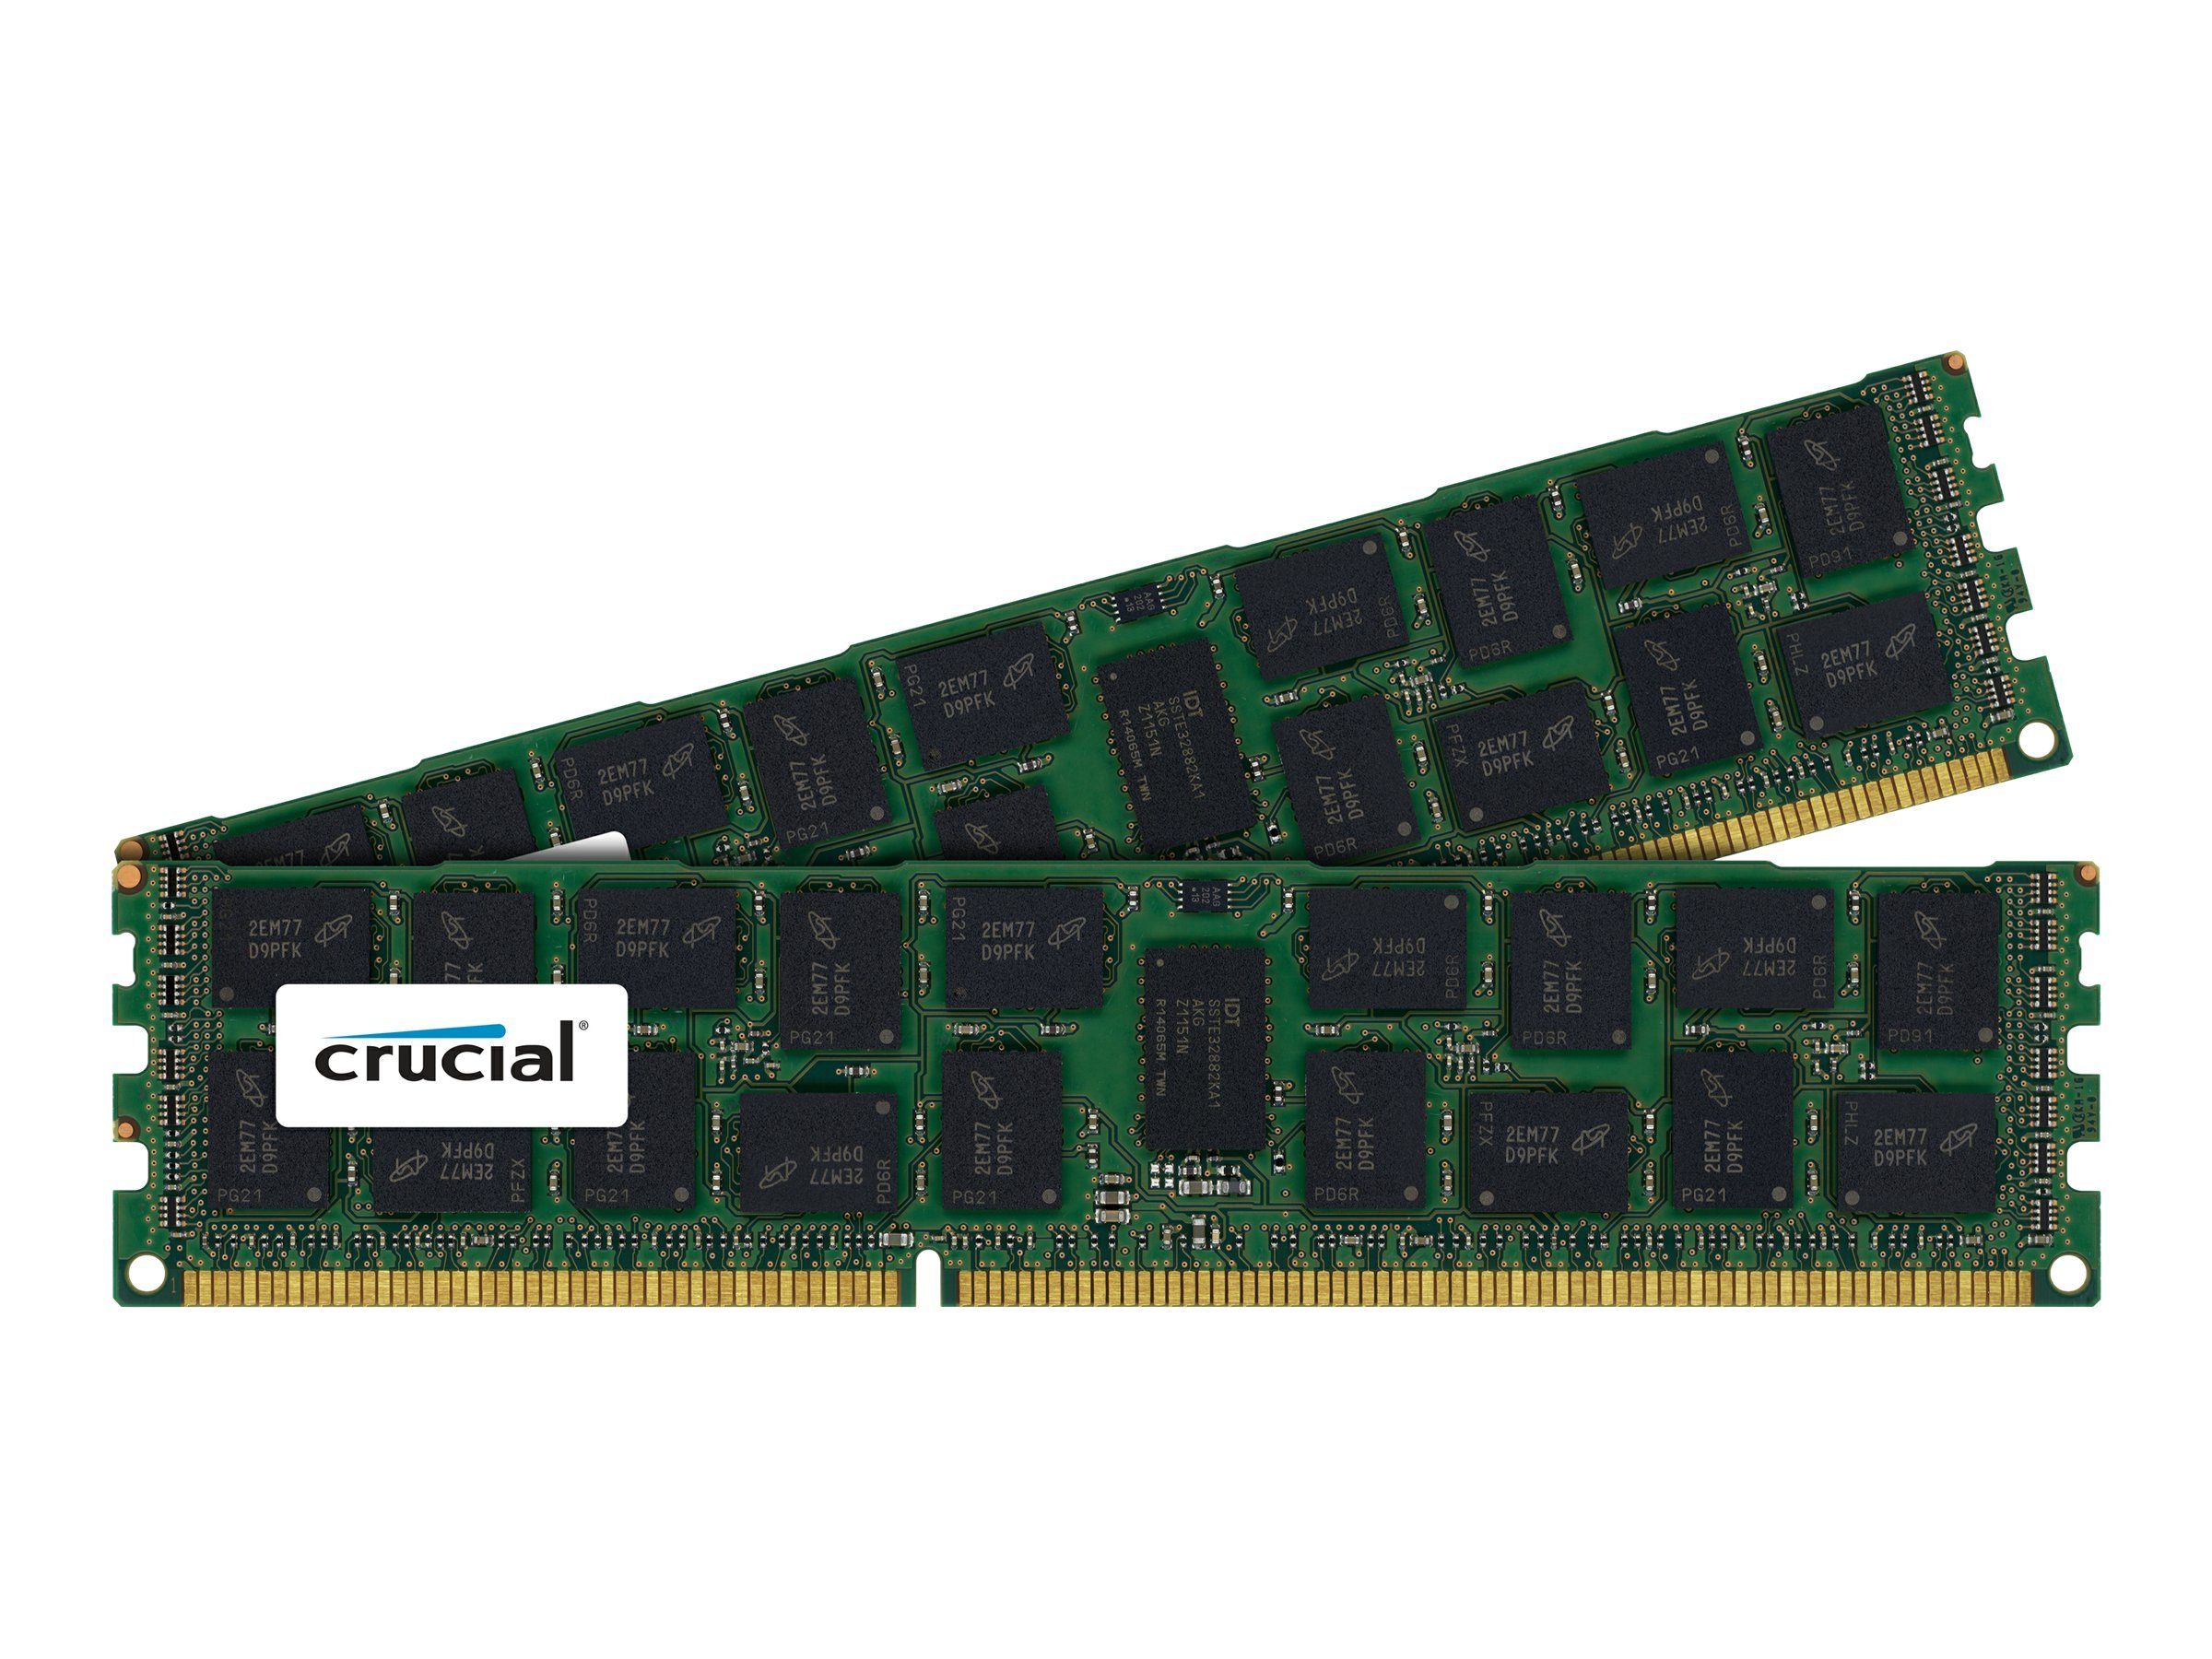 Crucial 64GB PC3-8500 240-pin DDR3 SDRAM DIMM Kit